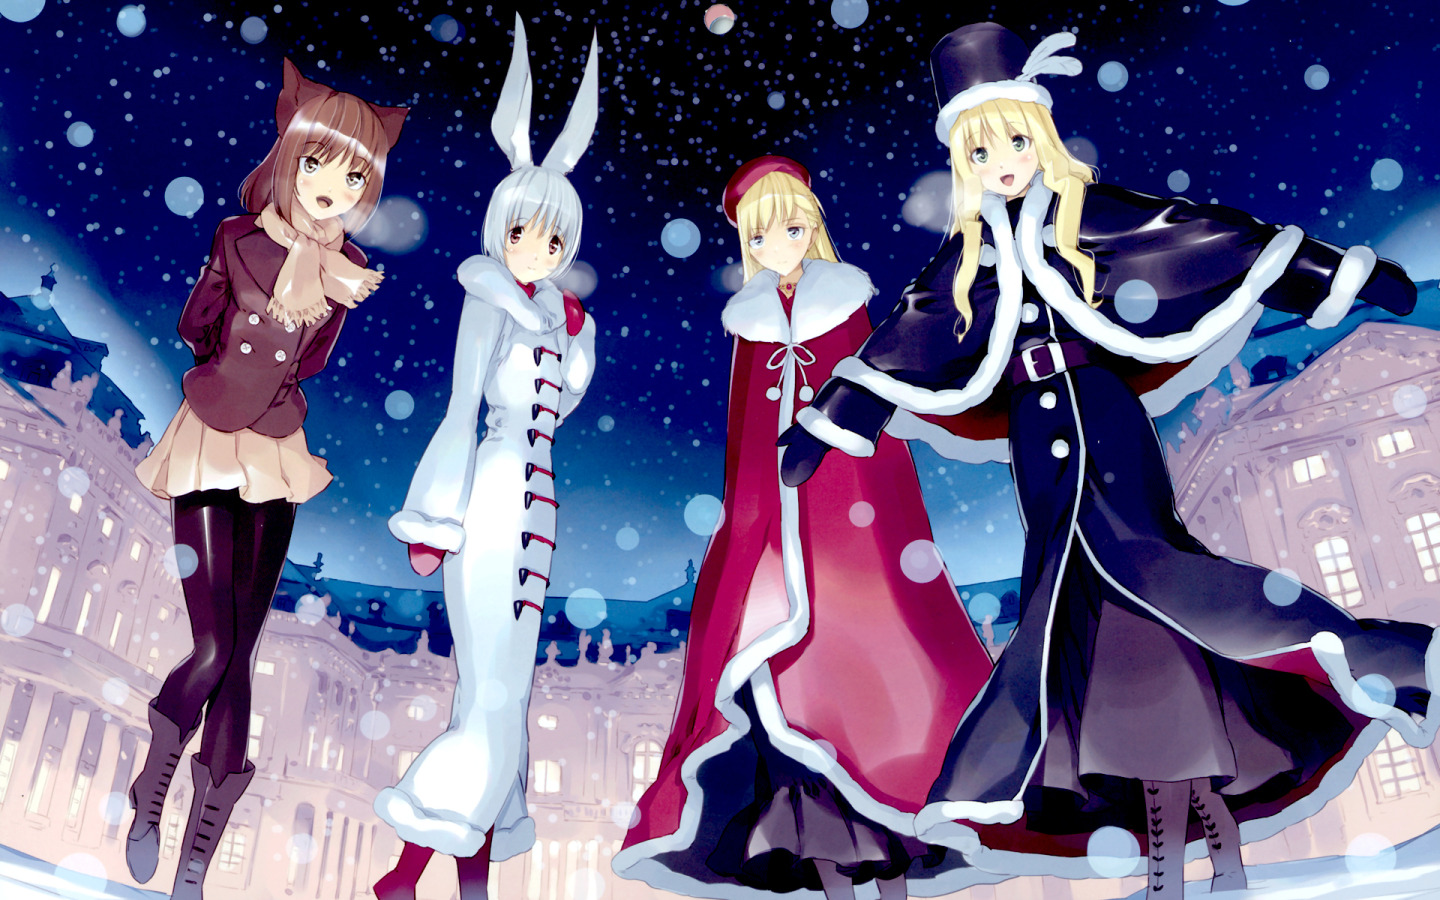 Download Anime Winter Girls Wallpaper : Widescreen : 1152 x 720 | 1280 x 800 ...